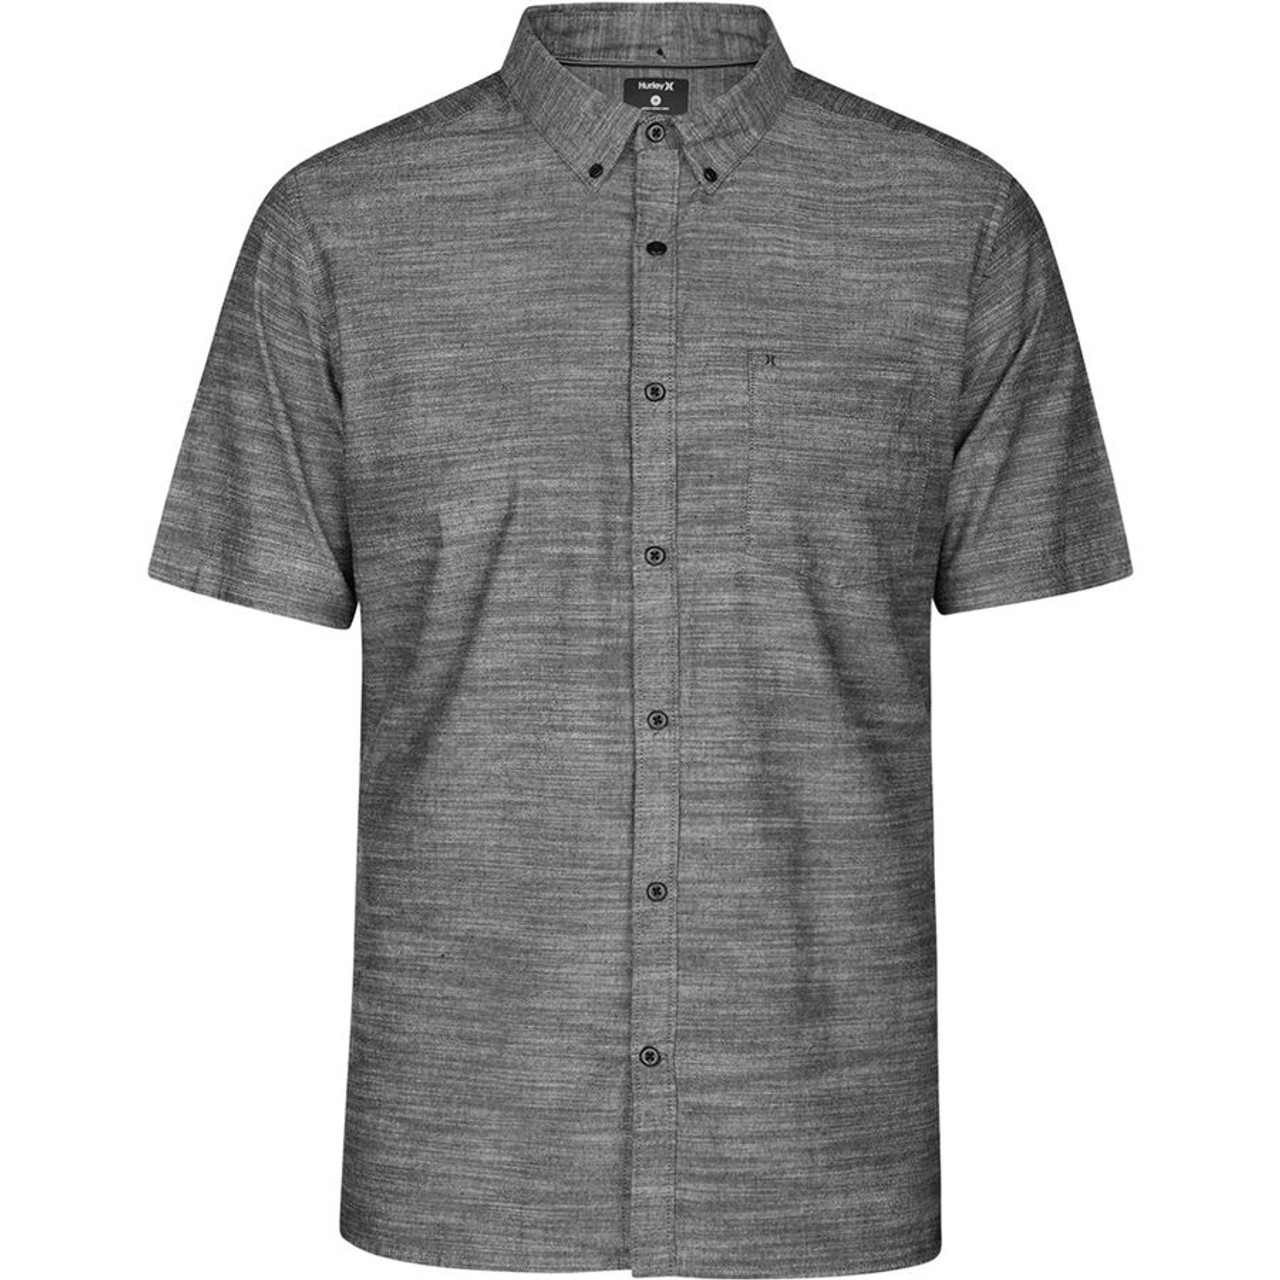 bcec0aaae3 Hurley Shirt - One and Only Woven 2.0 - Black